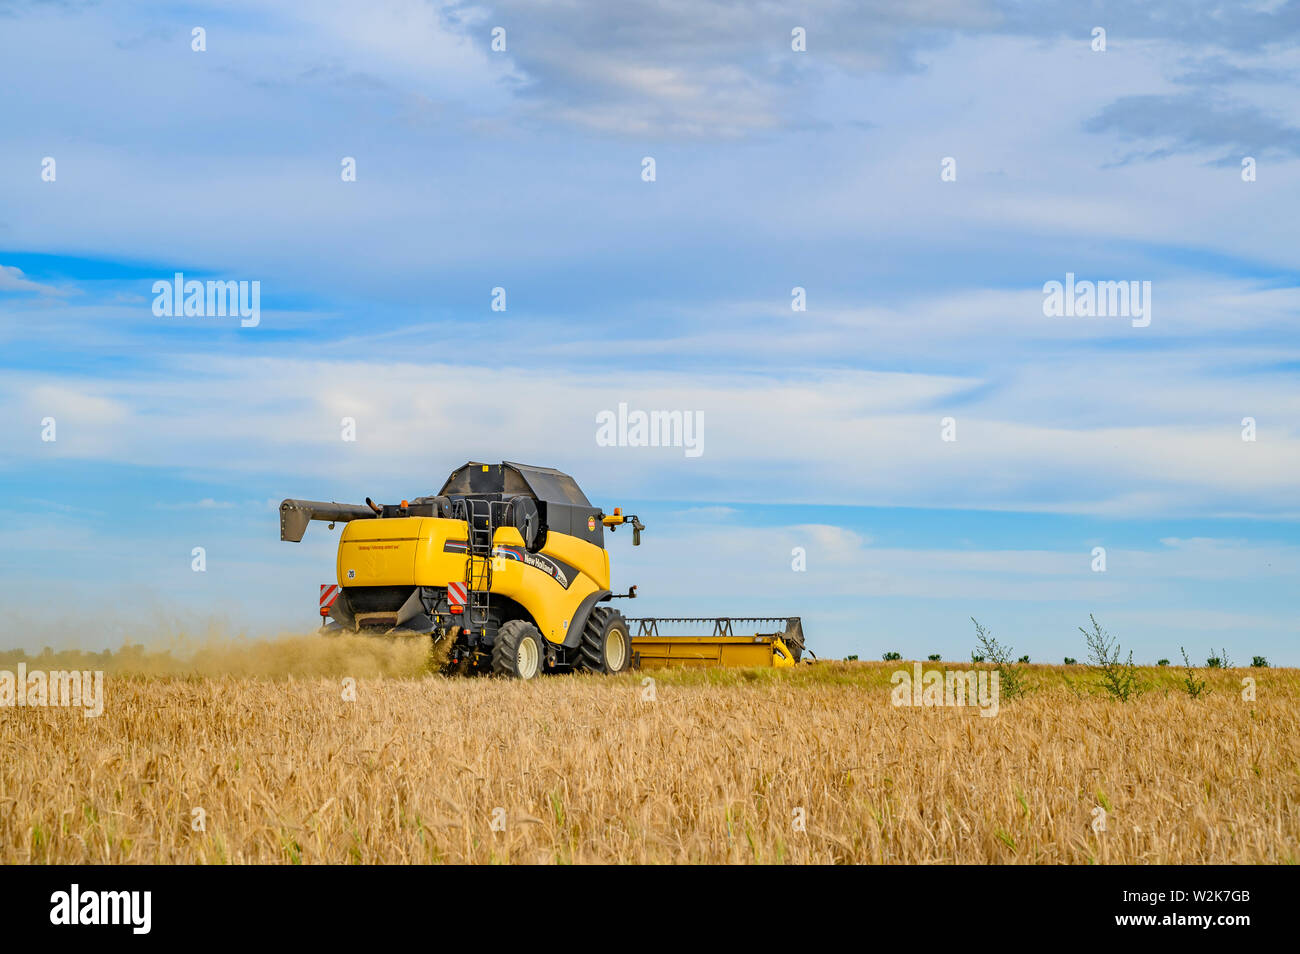 Berlin, Germany - July 05, 2019: View of a moving combine harvester on a field near Berlin under a cloudy sky. Stock Photo